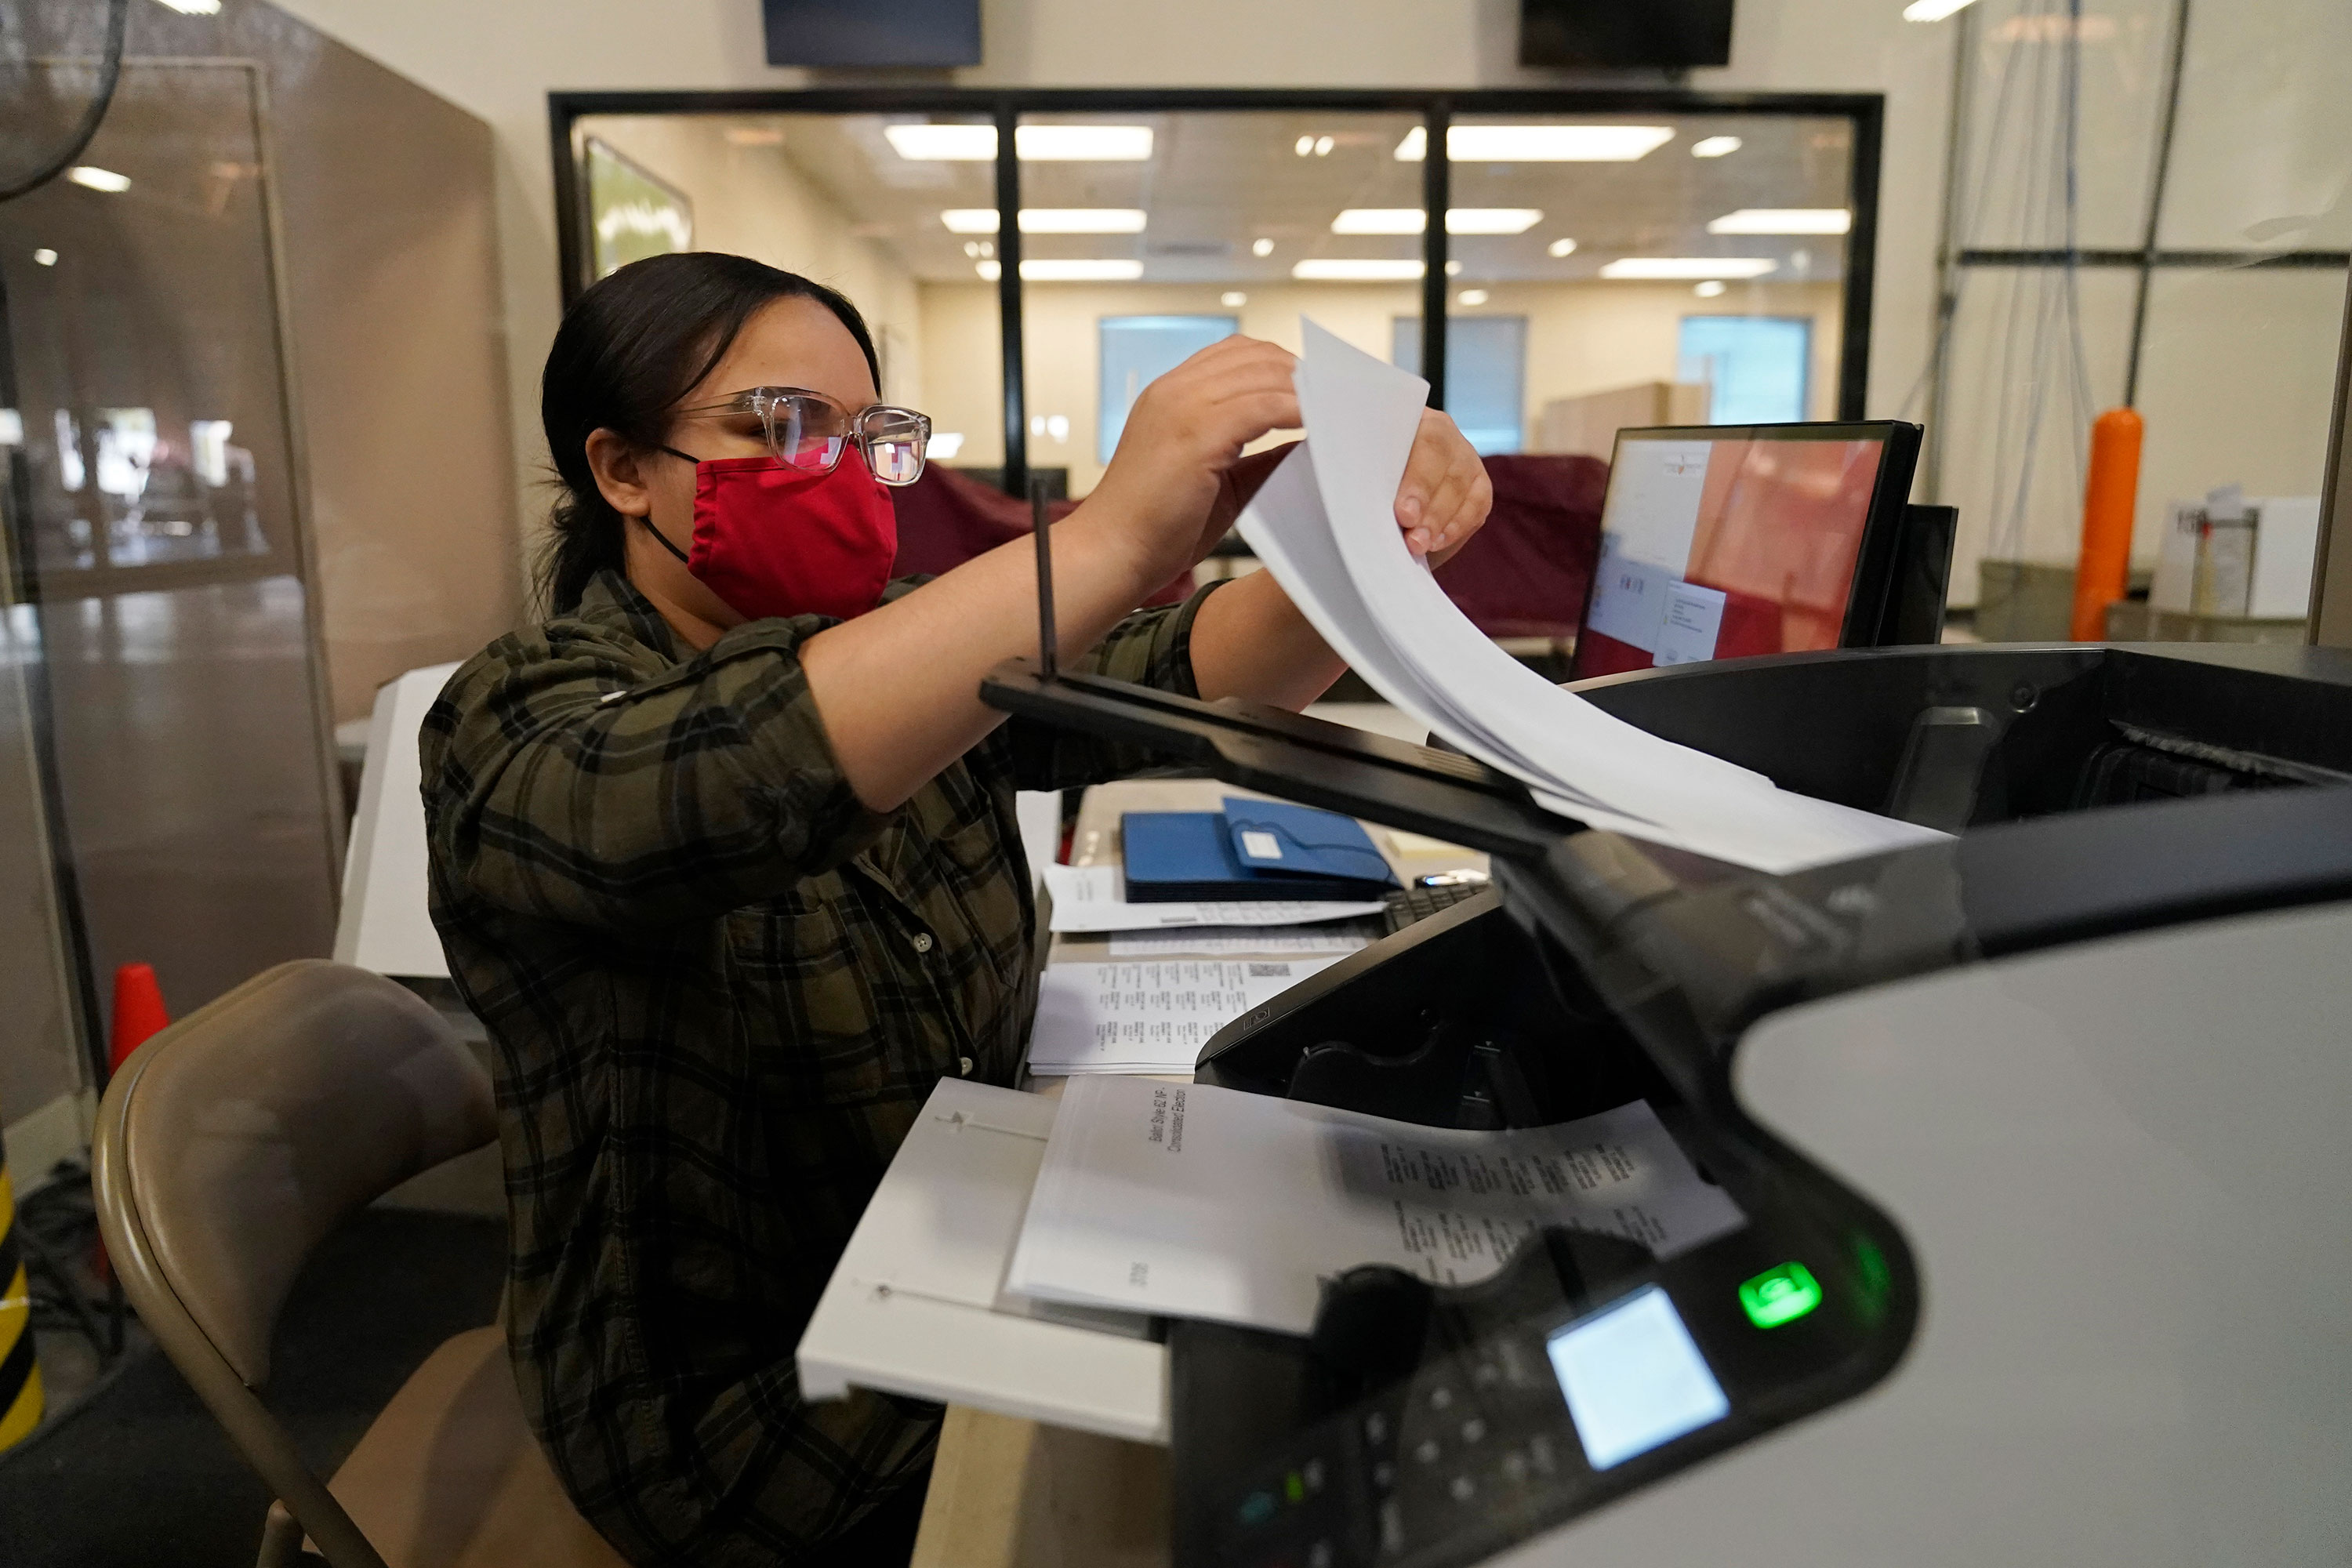 A county election worker scans ballots at a tabulating area at the Clark County Election Department in Las Vegas on November 4.